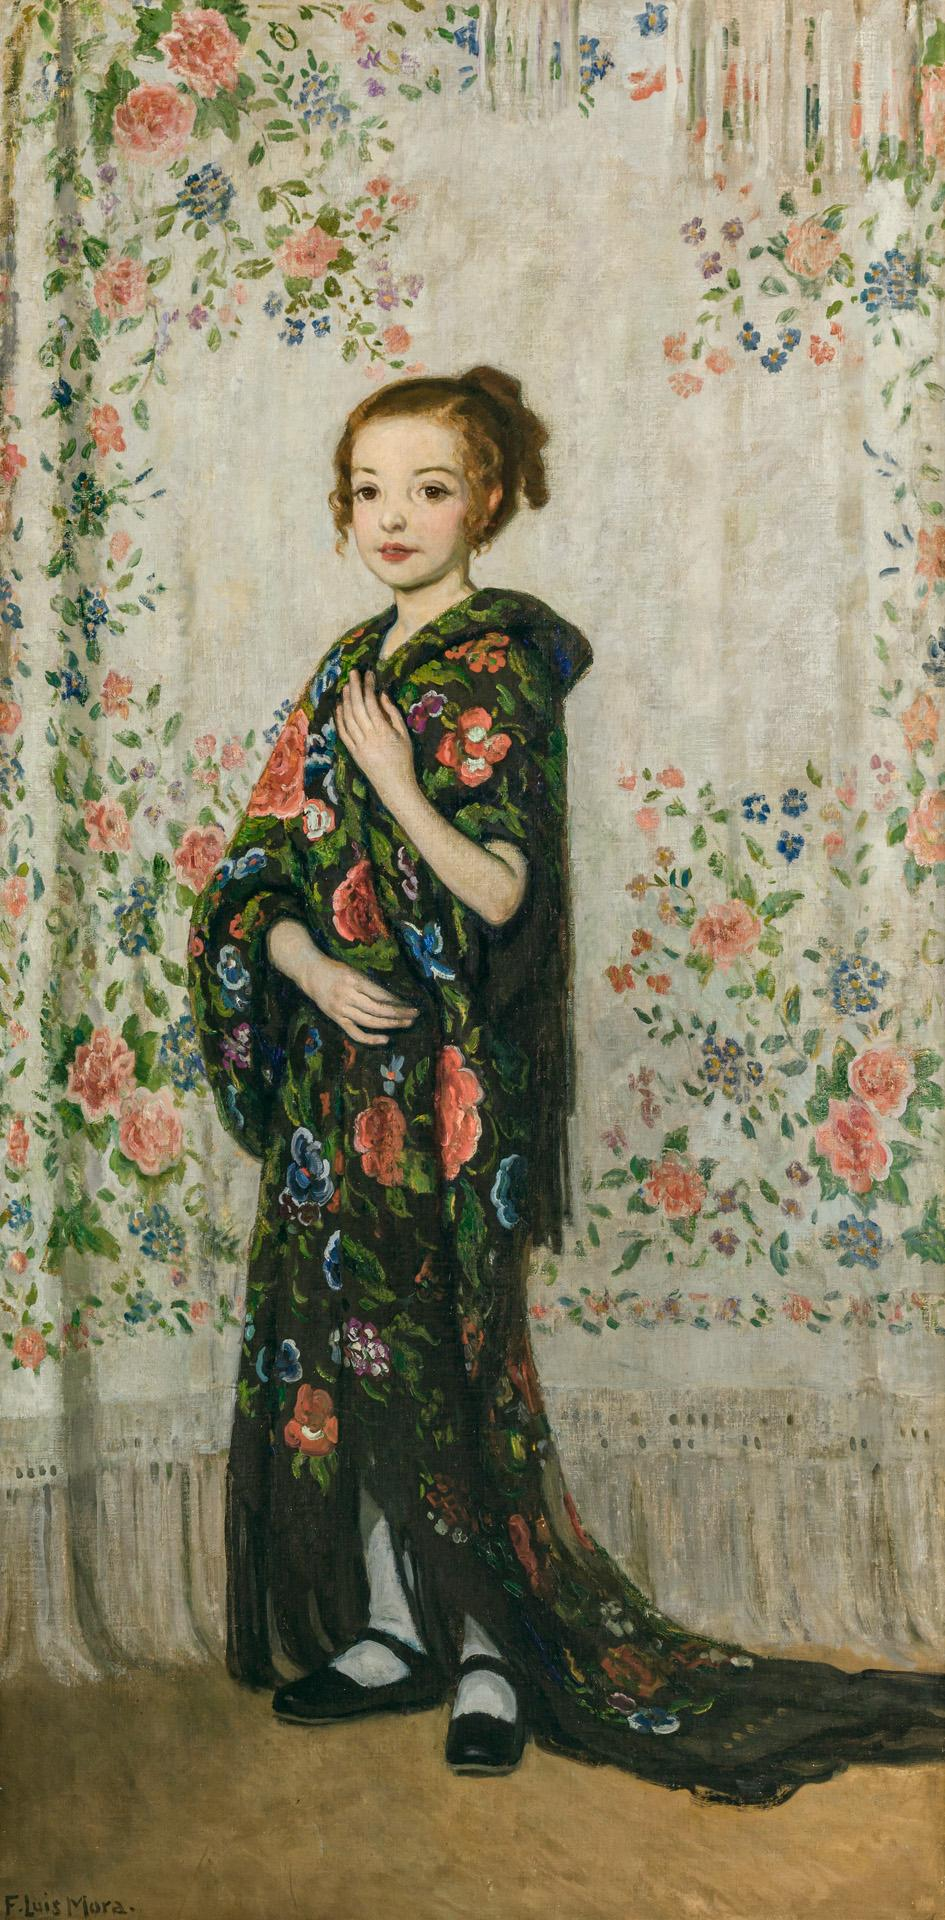 """FRANCIS LUIS MORA, American (1874-1940), """"Spanish Shawls"""" (Rosemary), oil on canvas, signed lower left """"F. Luis Mora,"""" titled on the..."""